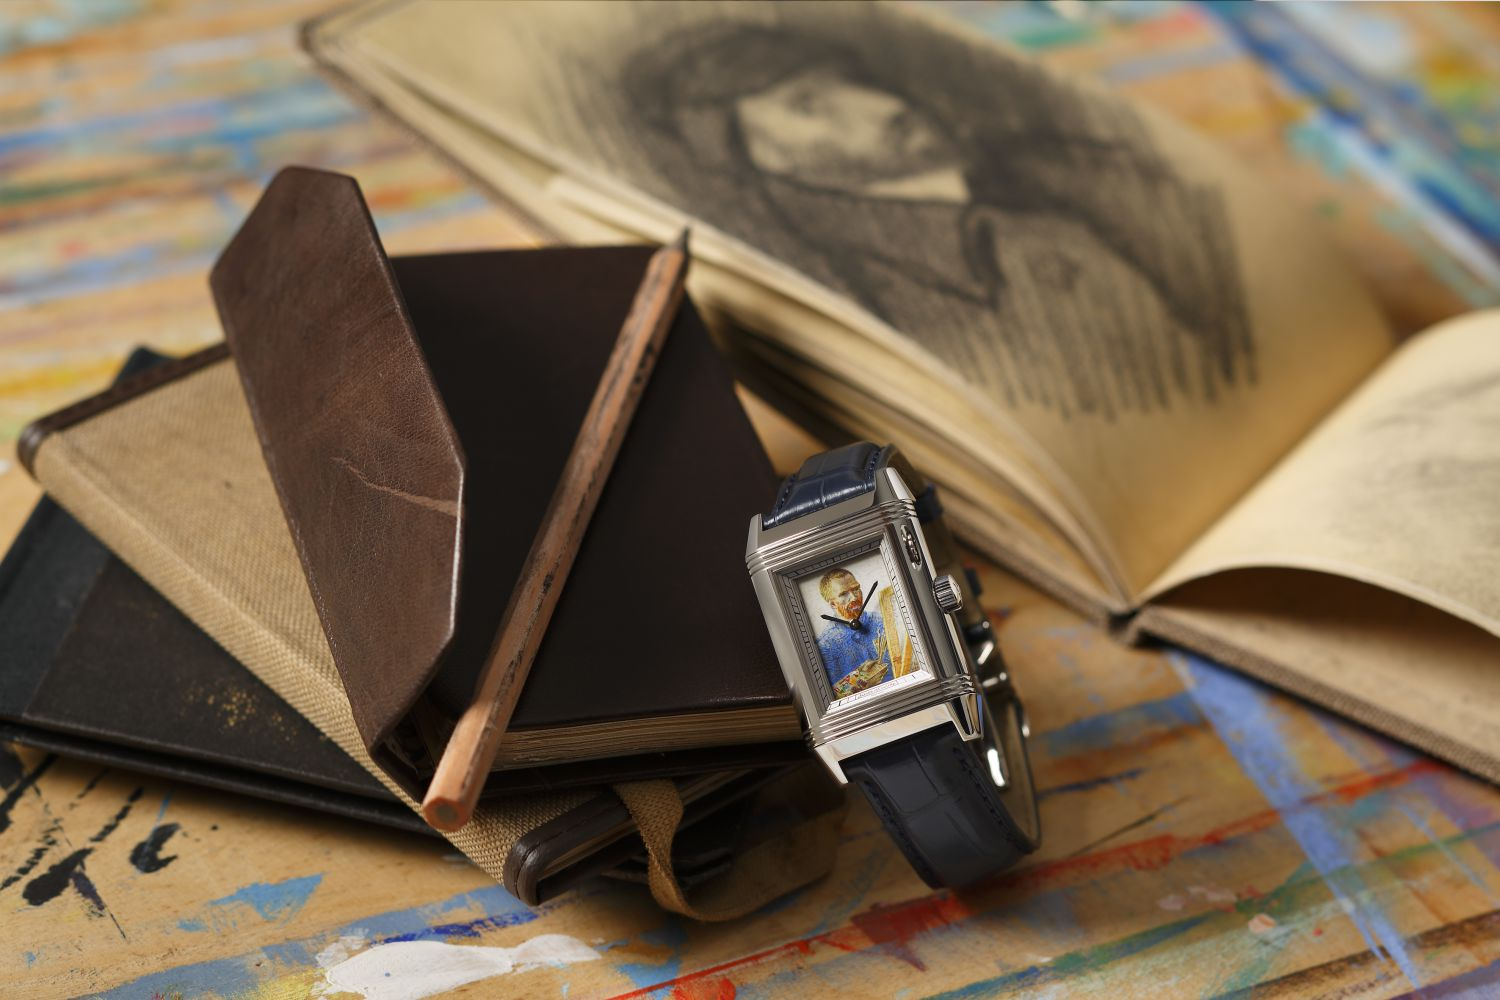 Jaeger-LeCoultre-Reverso-Tribute-to-Vincent-van-Gogh-6.jpg